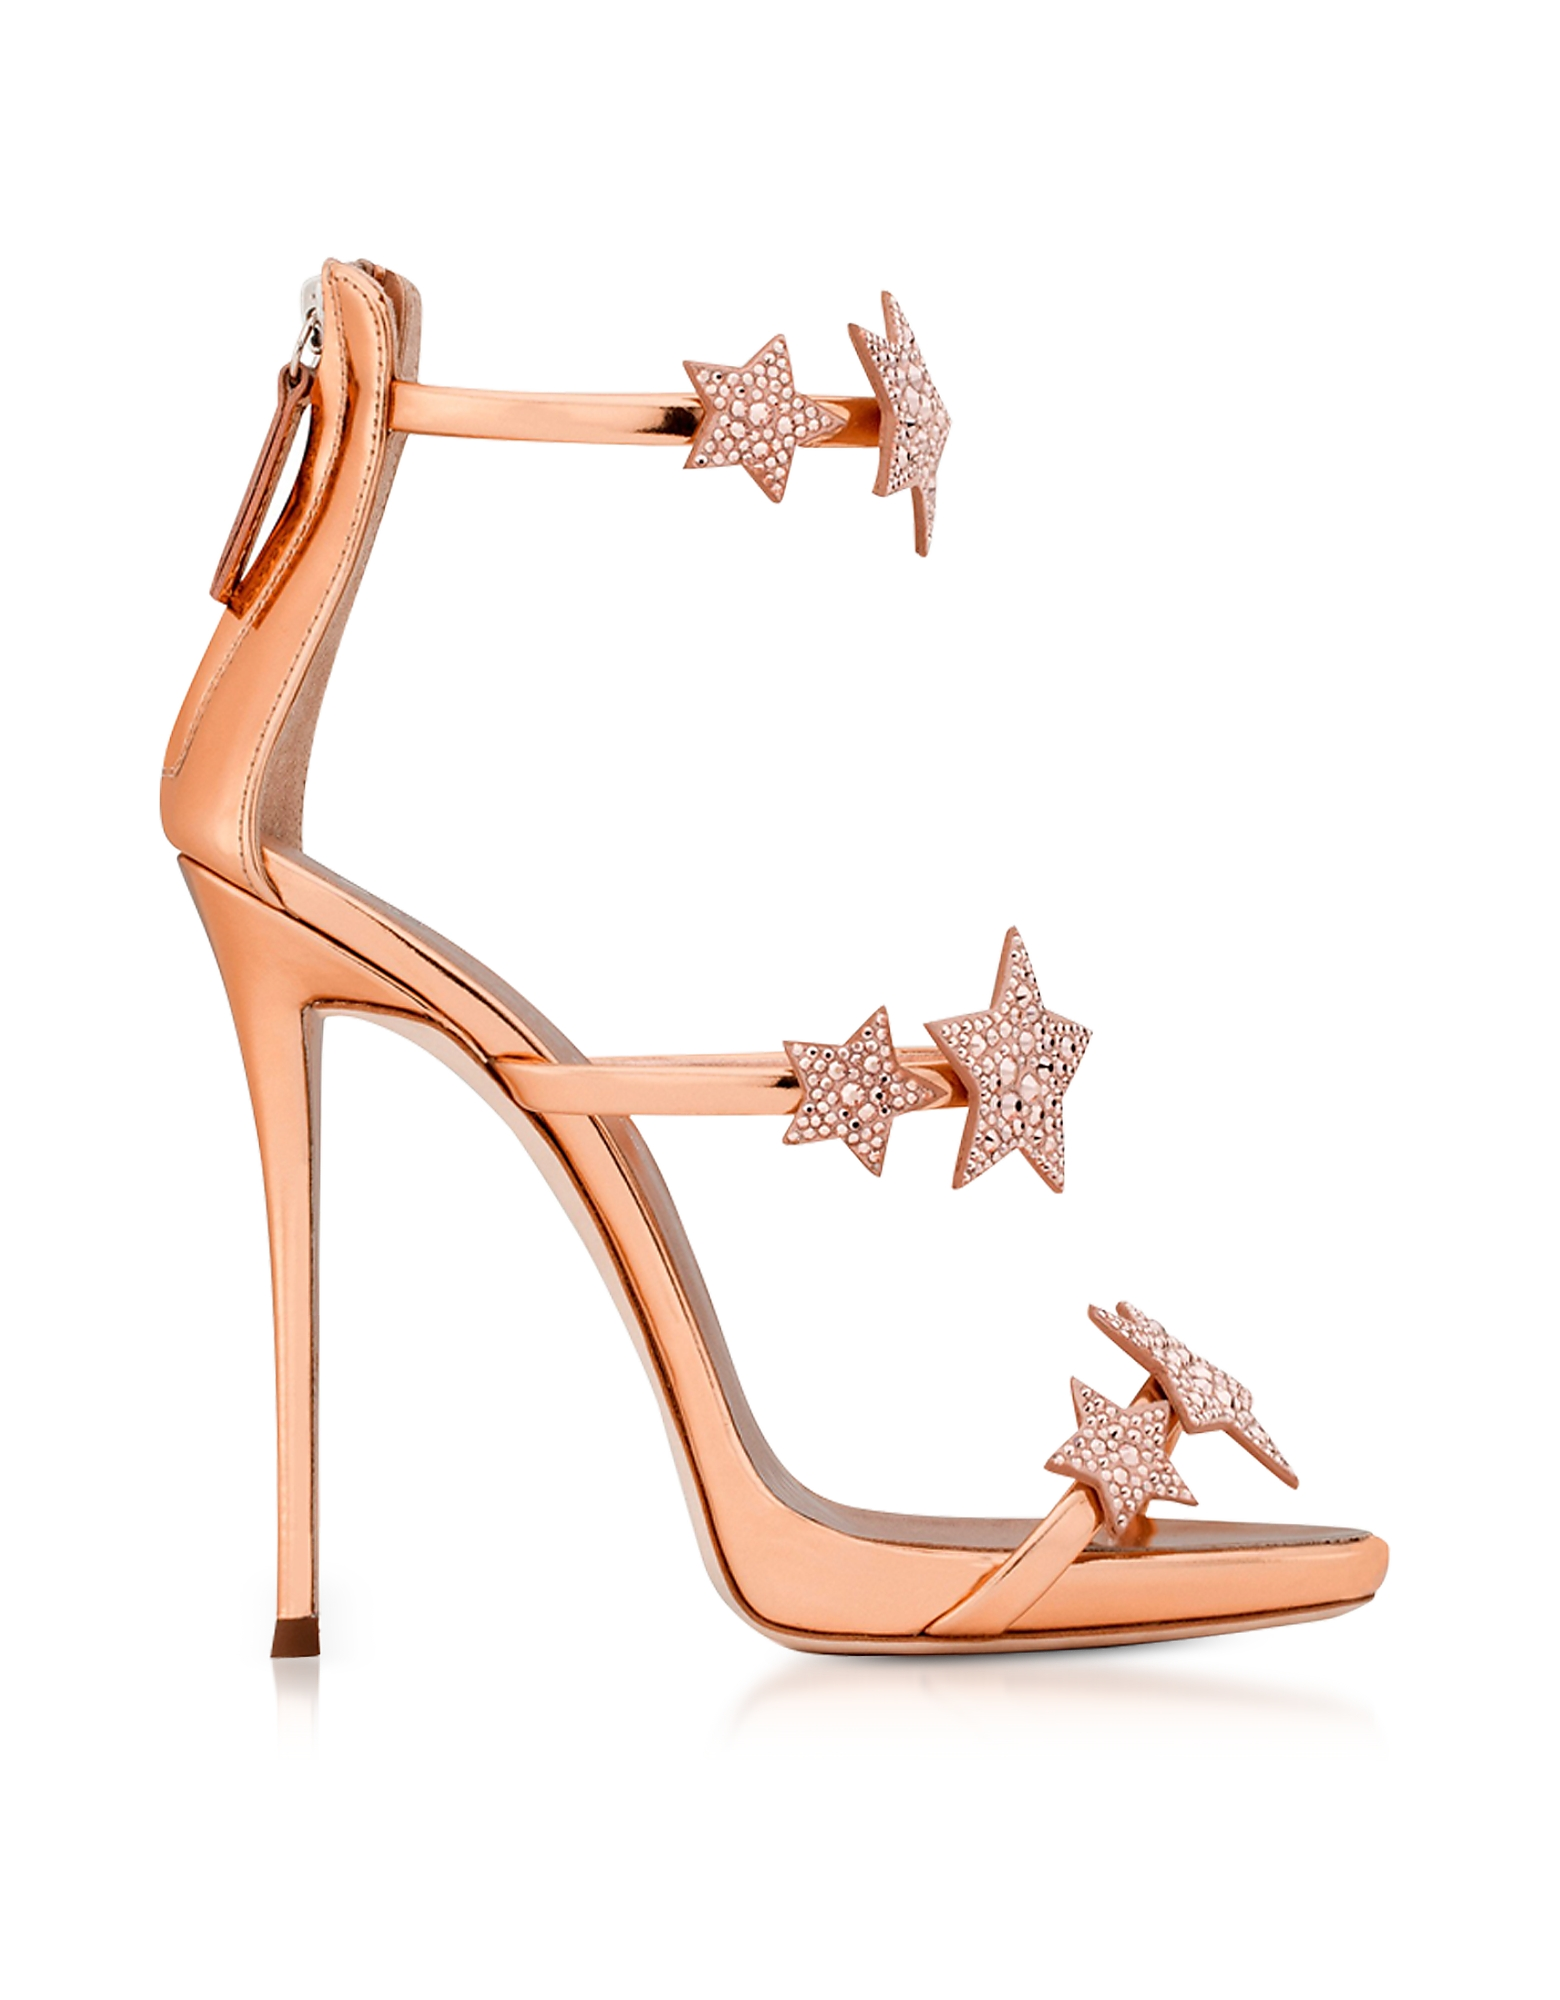 Giuseppe Zanotti Shoes, Armony Star Copper Laminated Leather High Heel Sandals